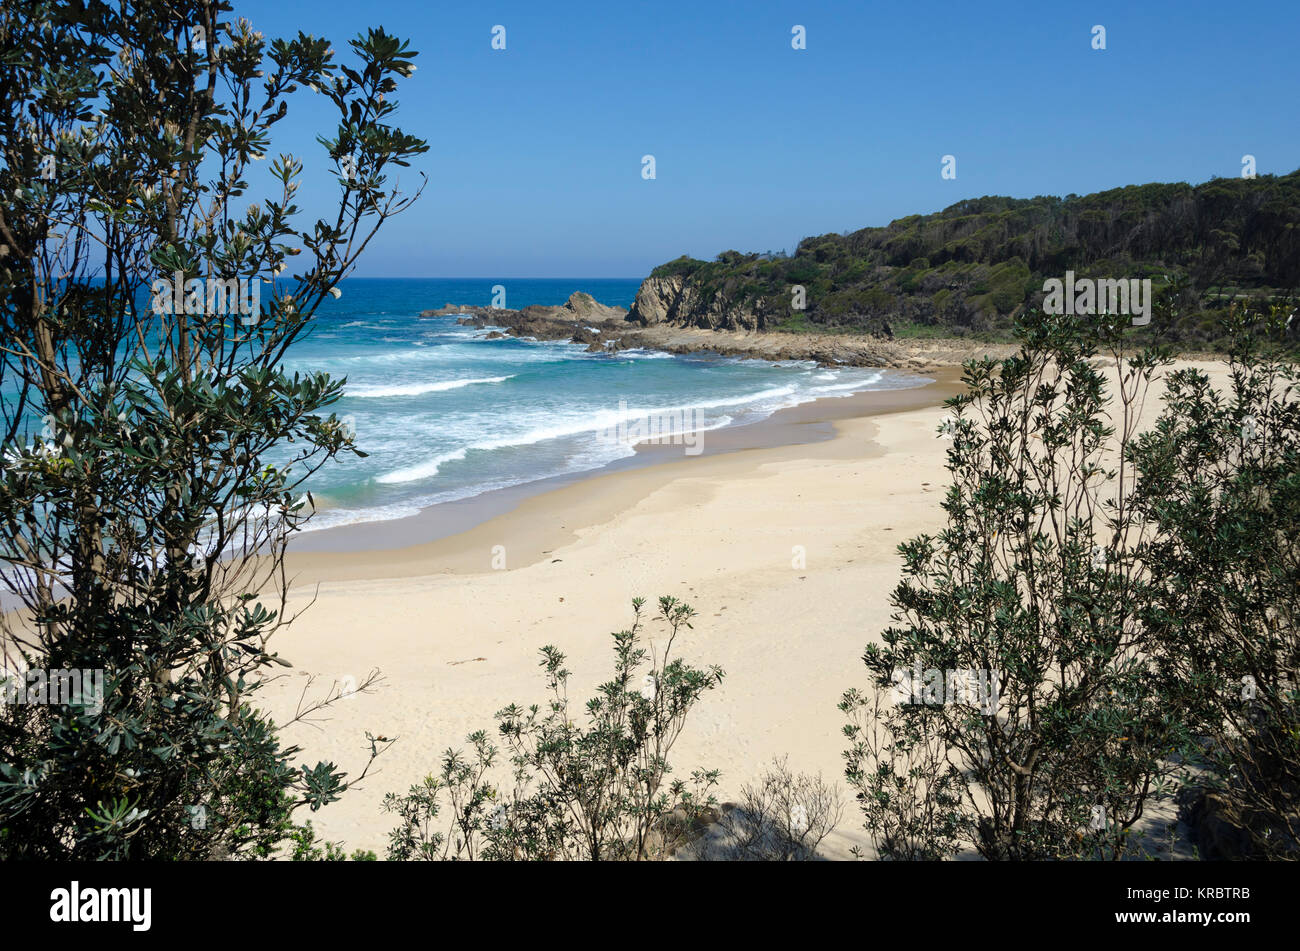 Piccaninny Beach, Potato Point, New South Wales, Australia - Stock Image